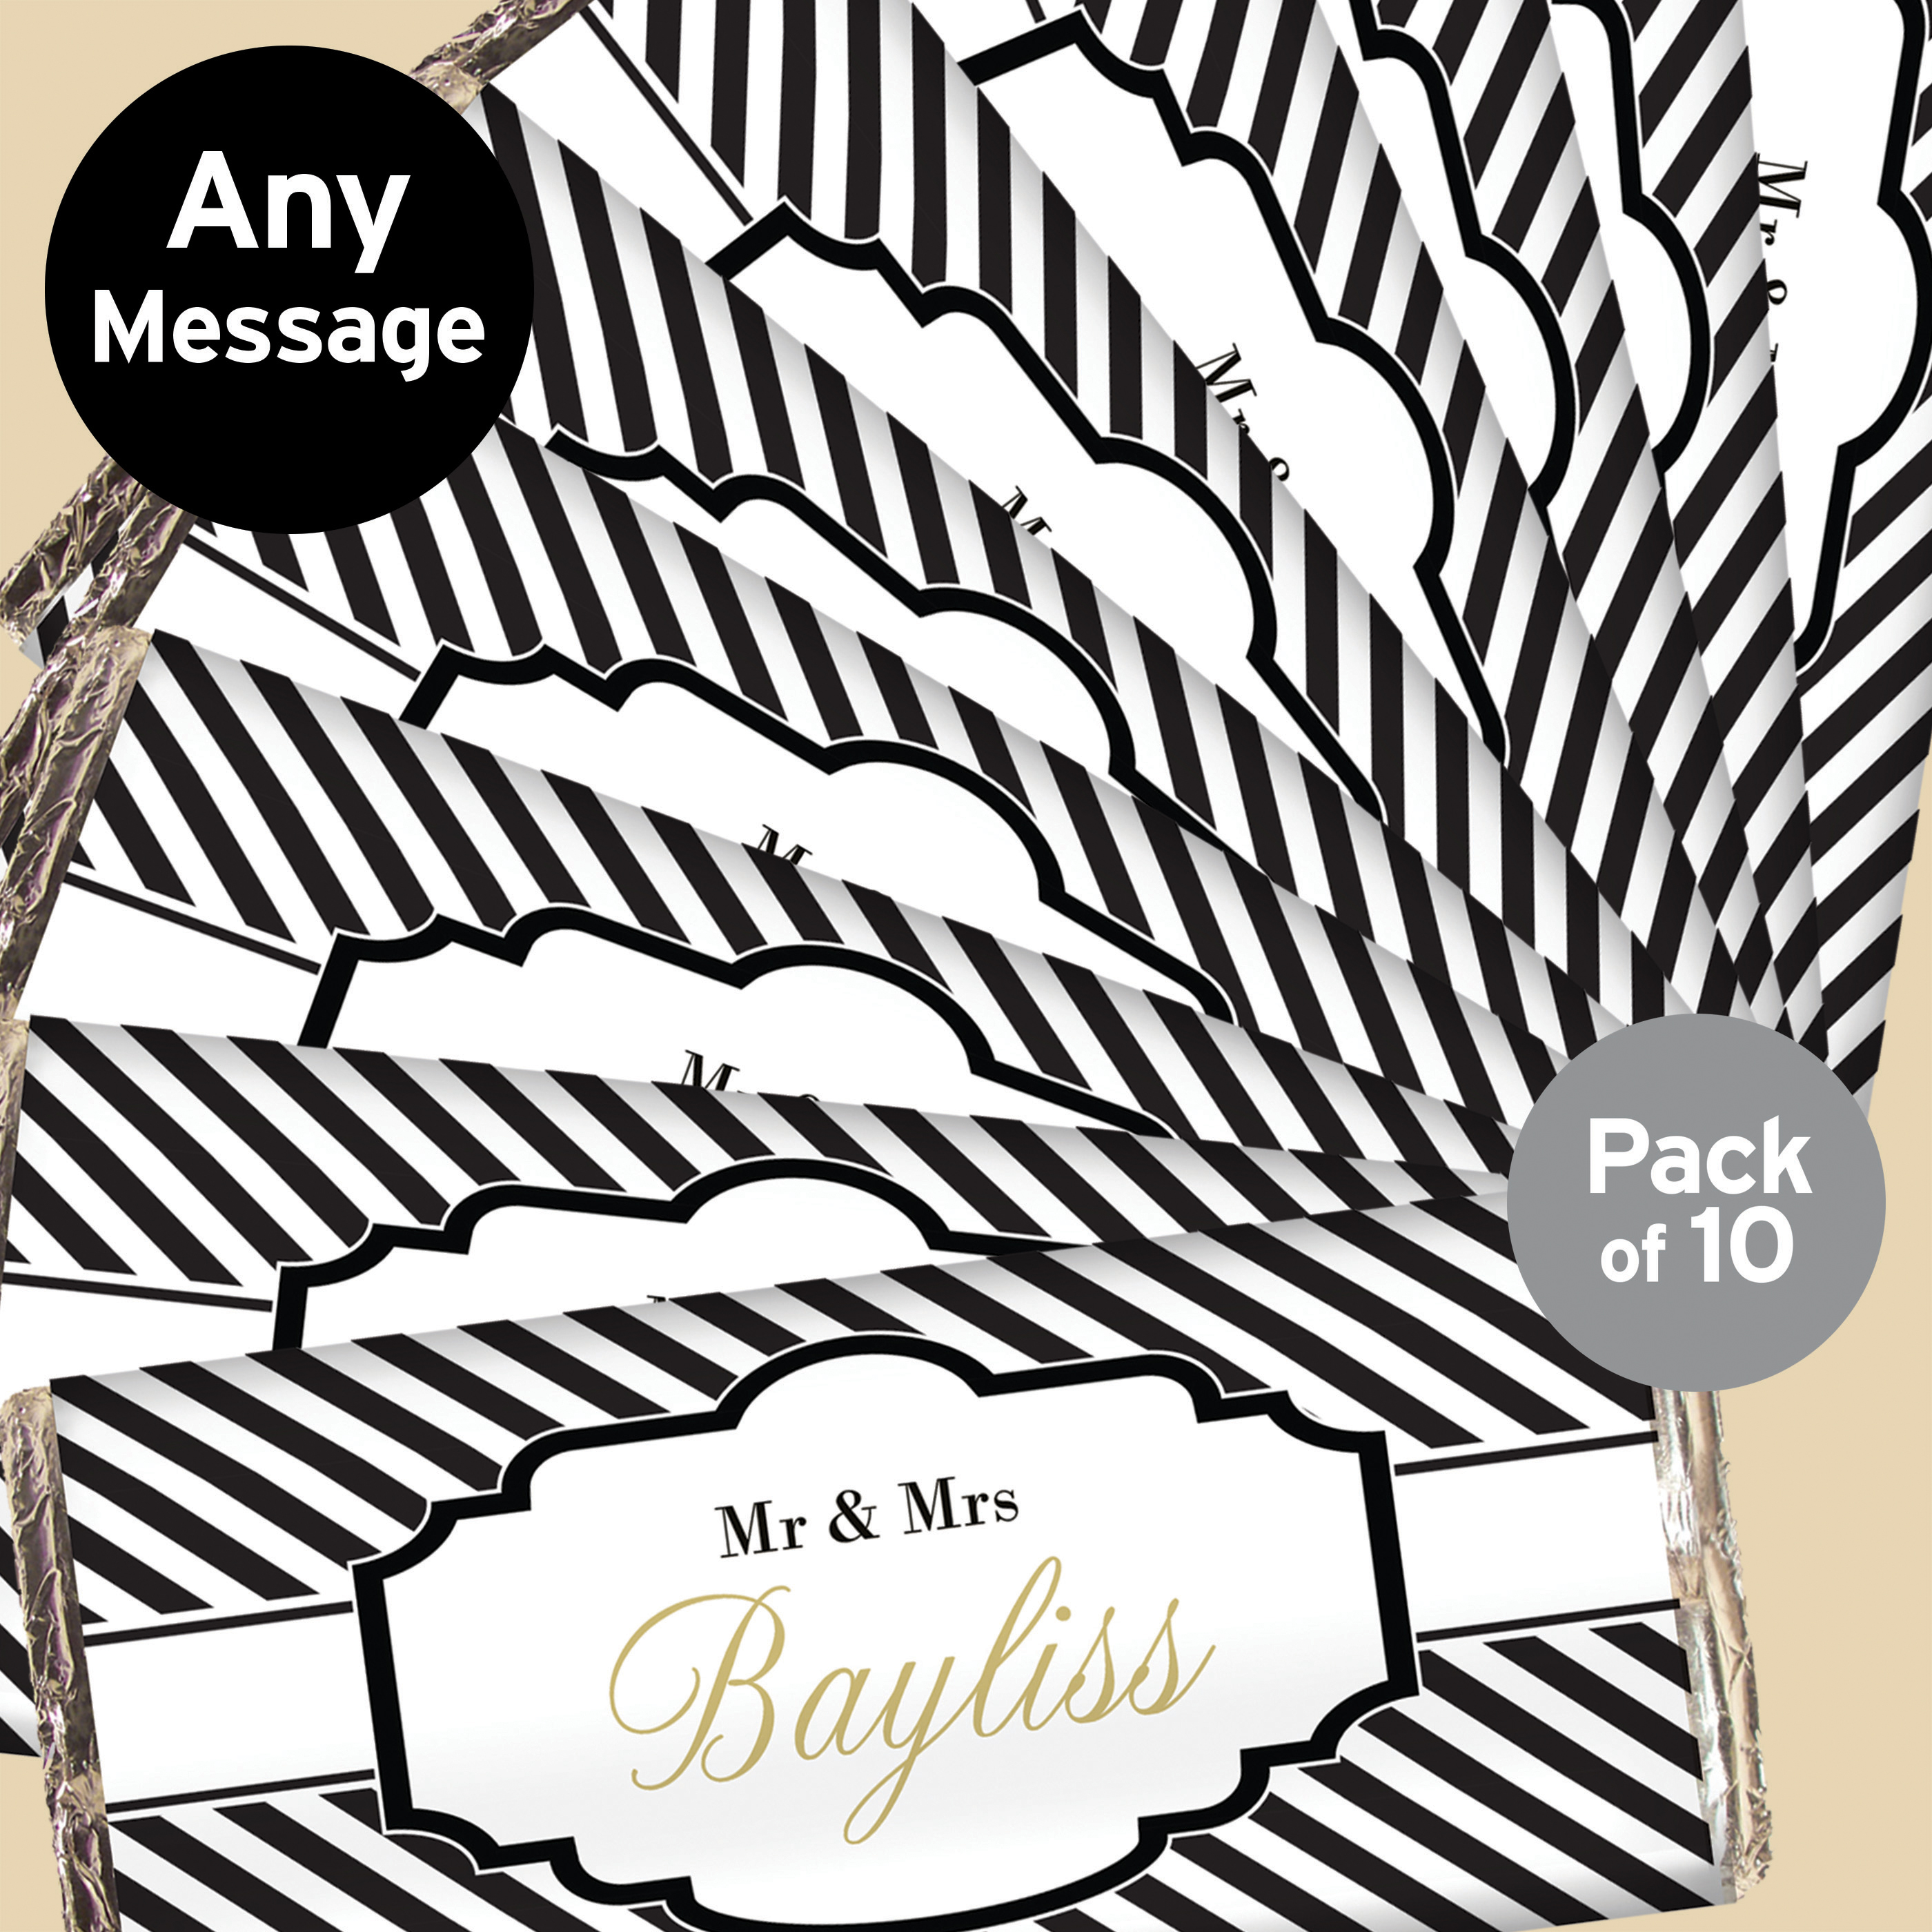 Personalised Art Deco Striped Pack of 10 Chocolate Bar